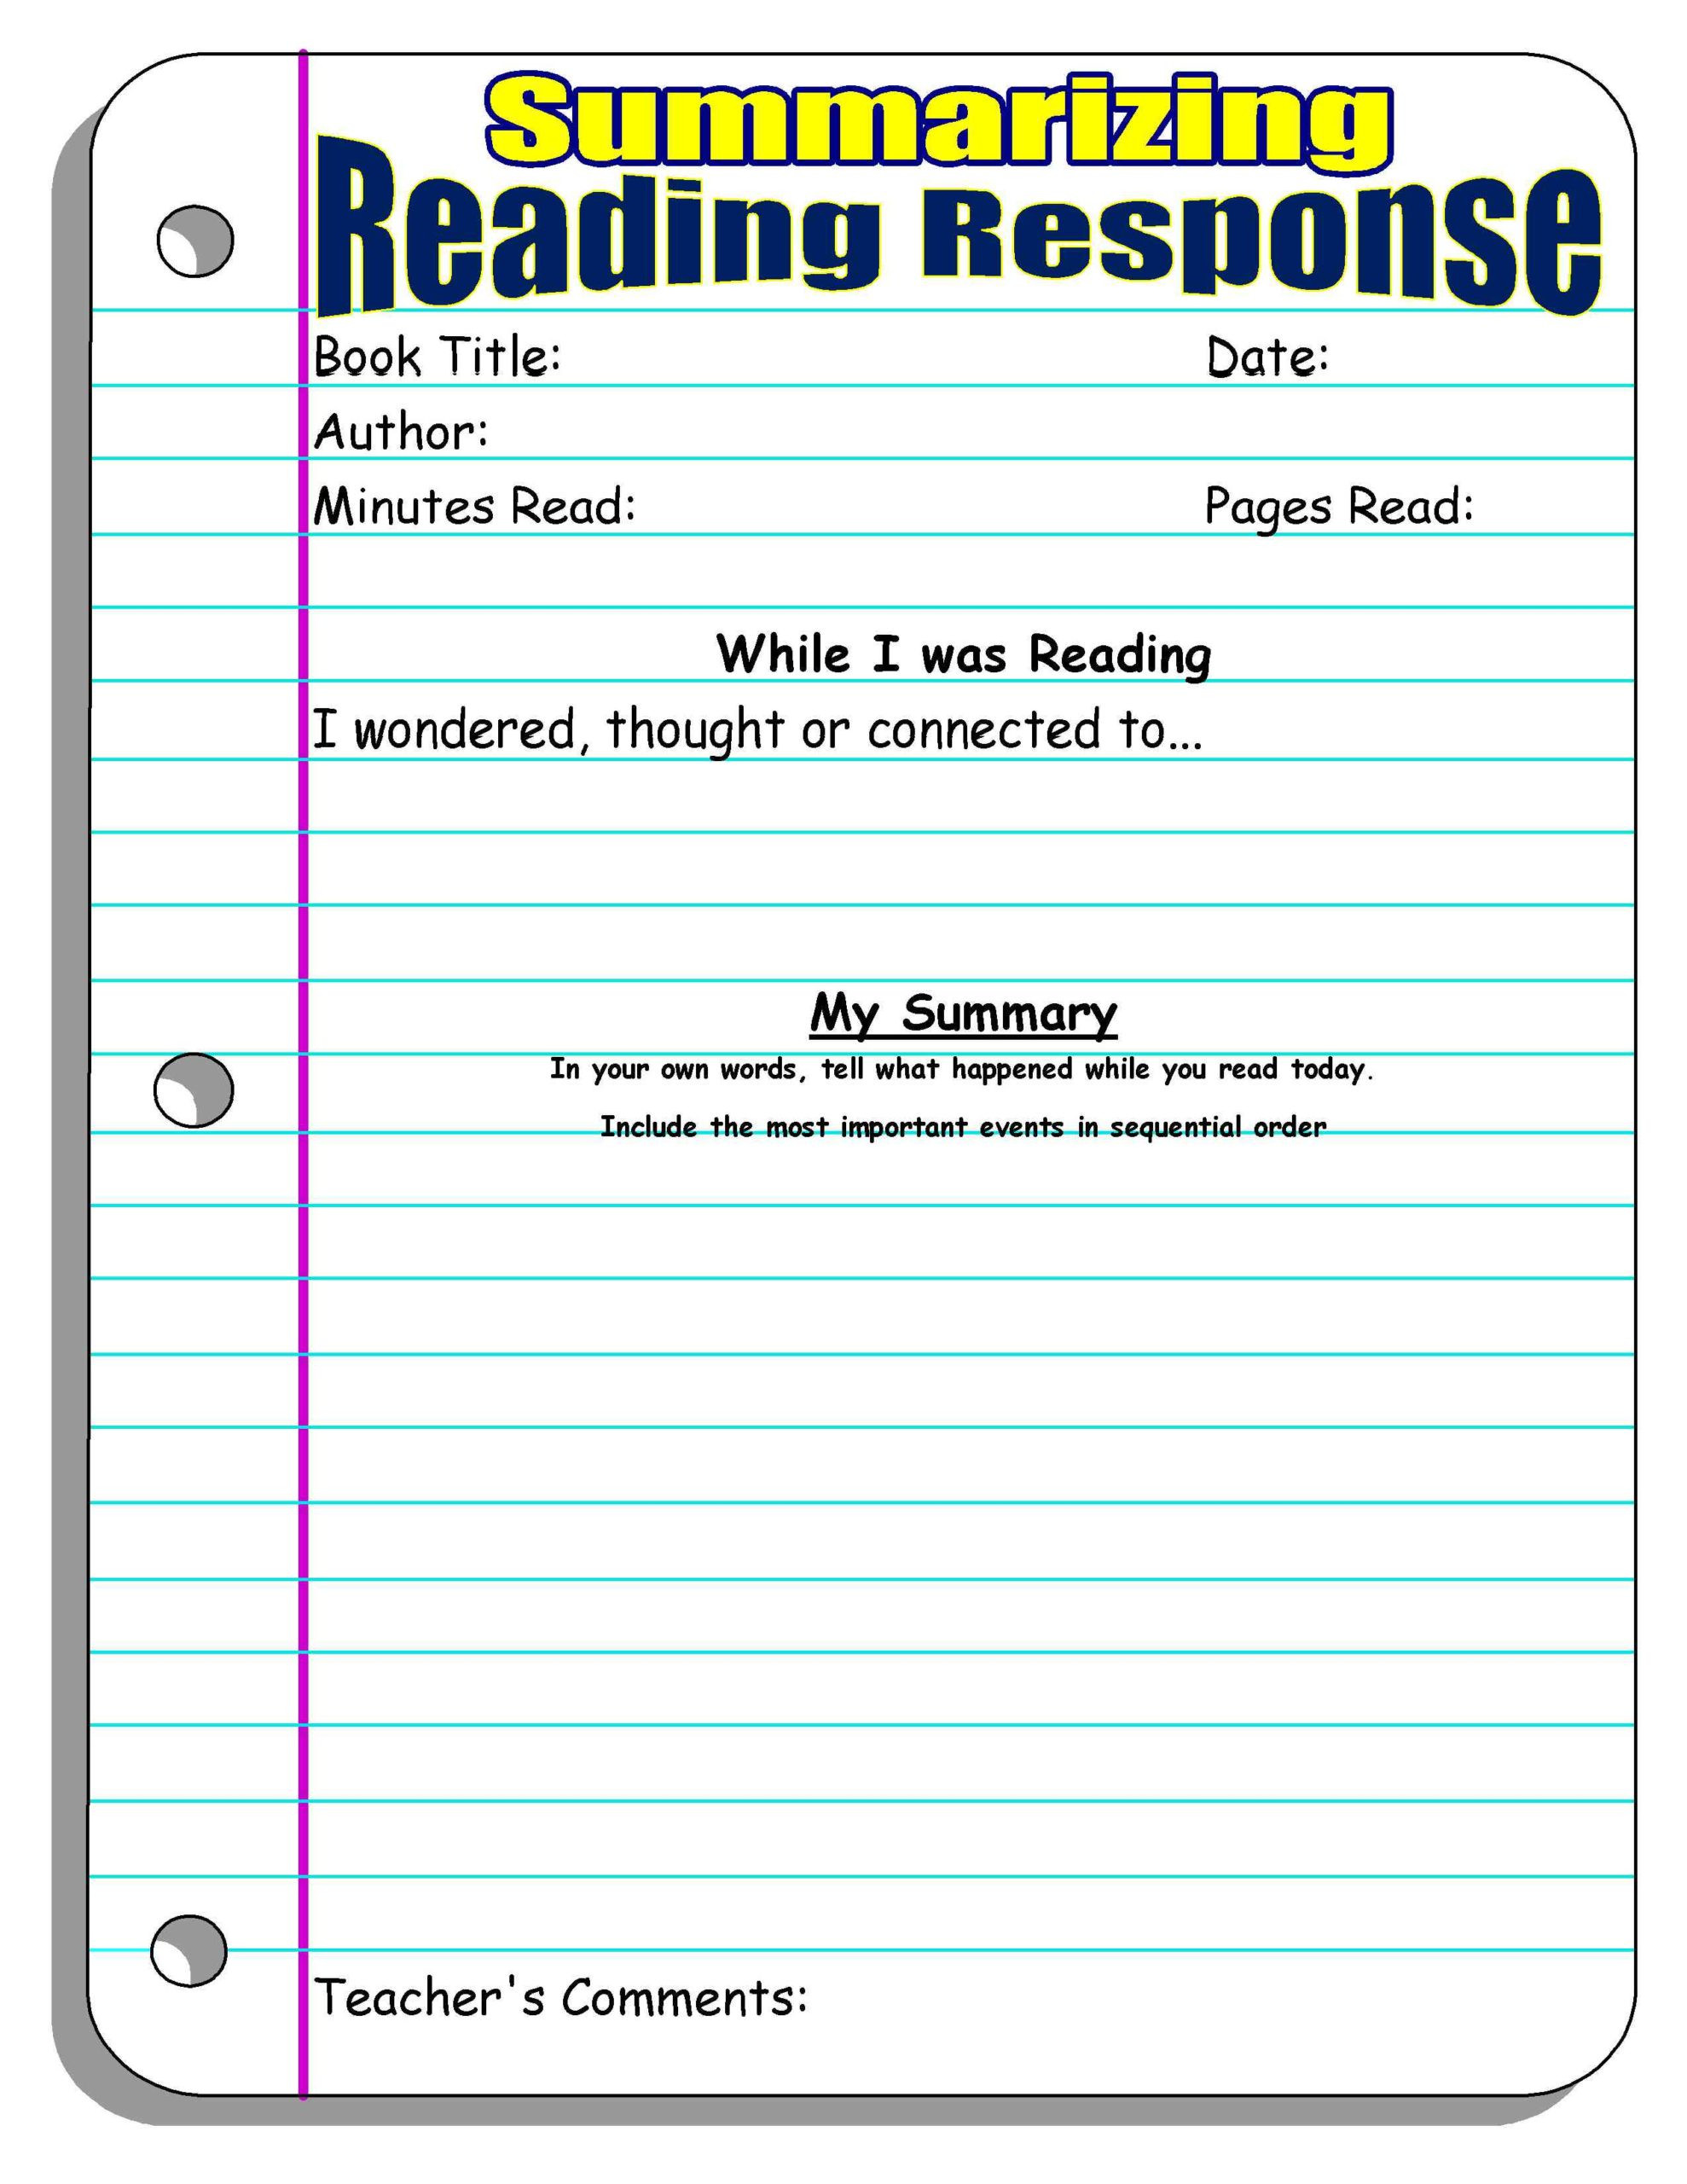 Summarizing Worksheet 3rd Grade Math Worksheet Remarkable Free Reading Worksheets for 2nd